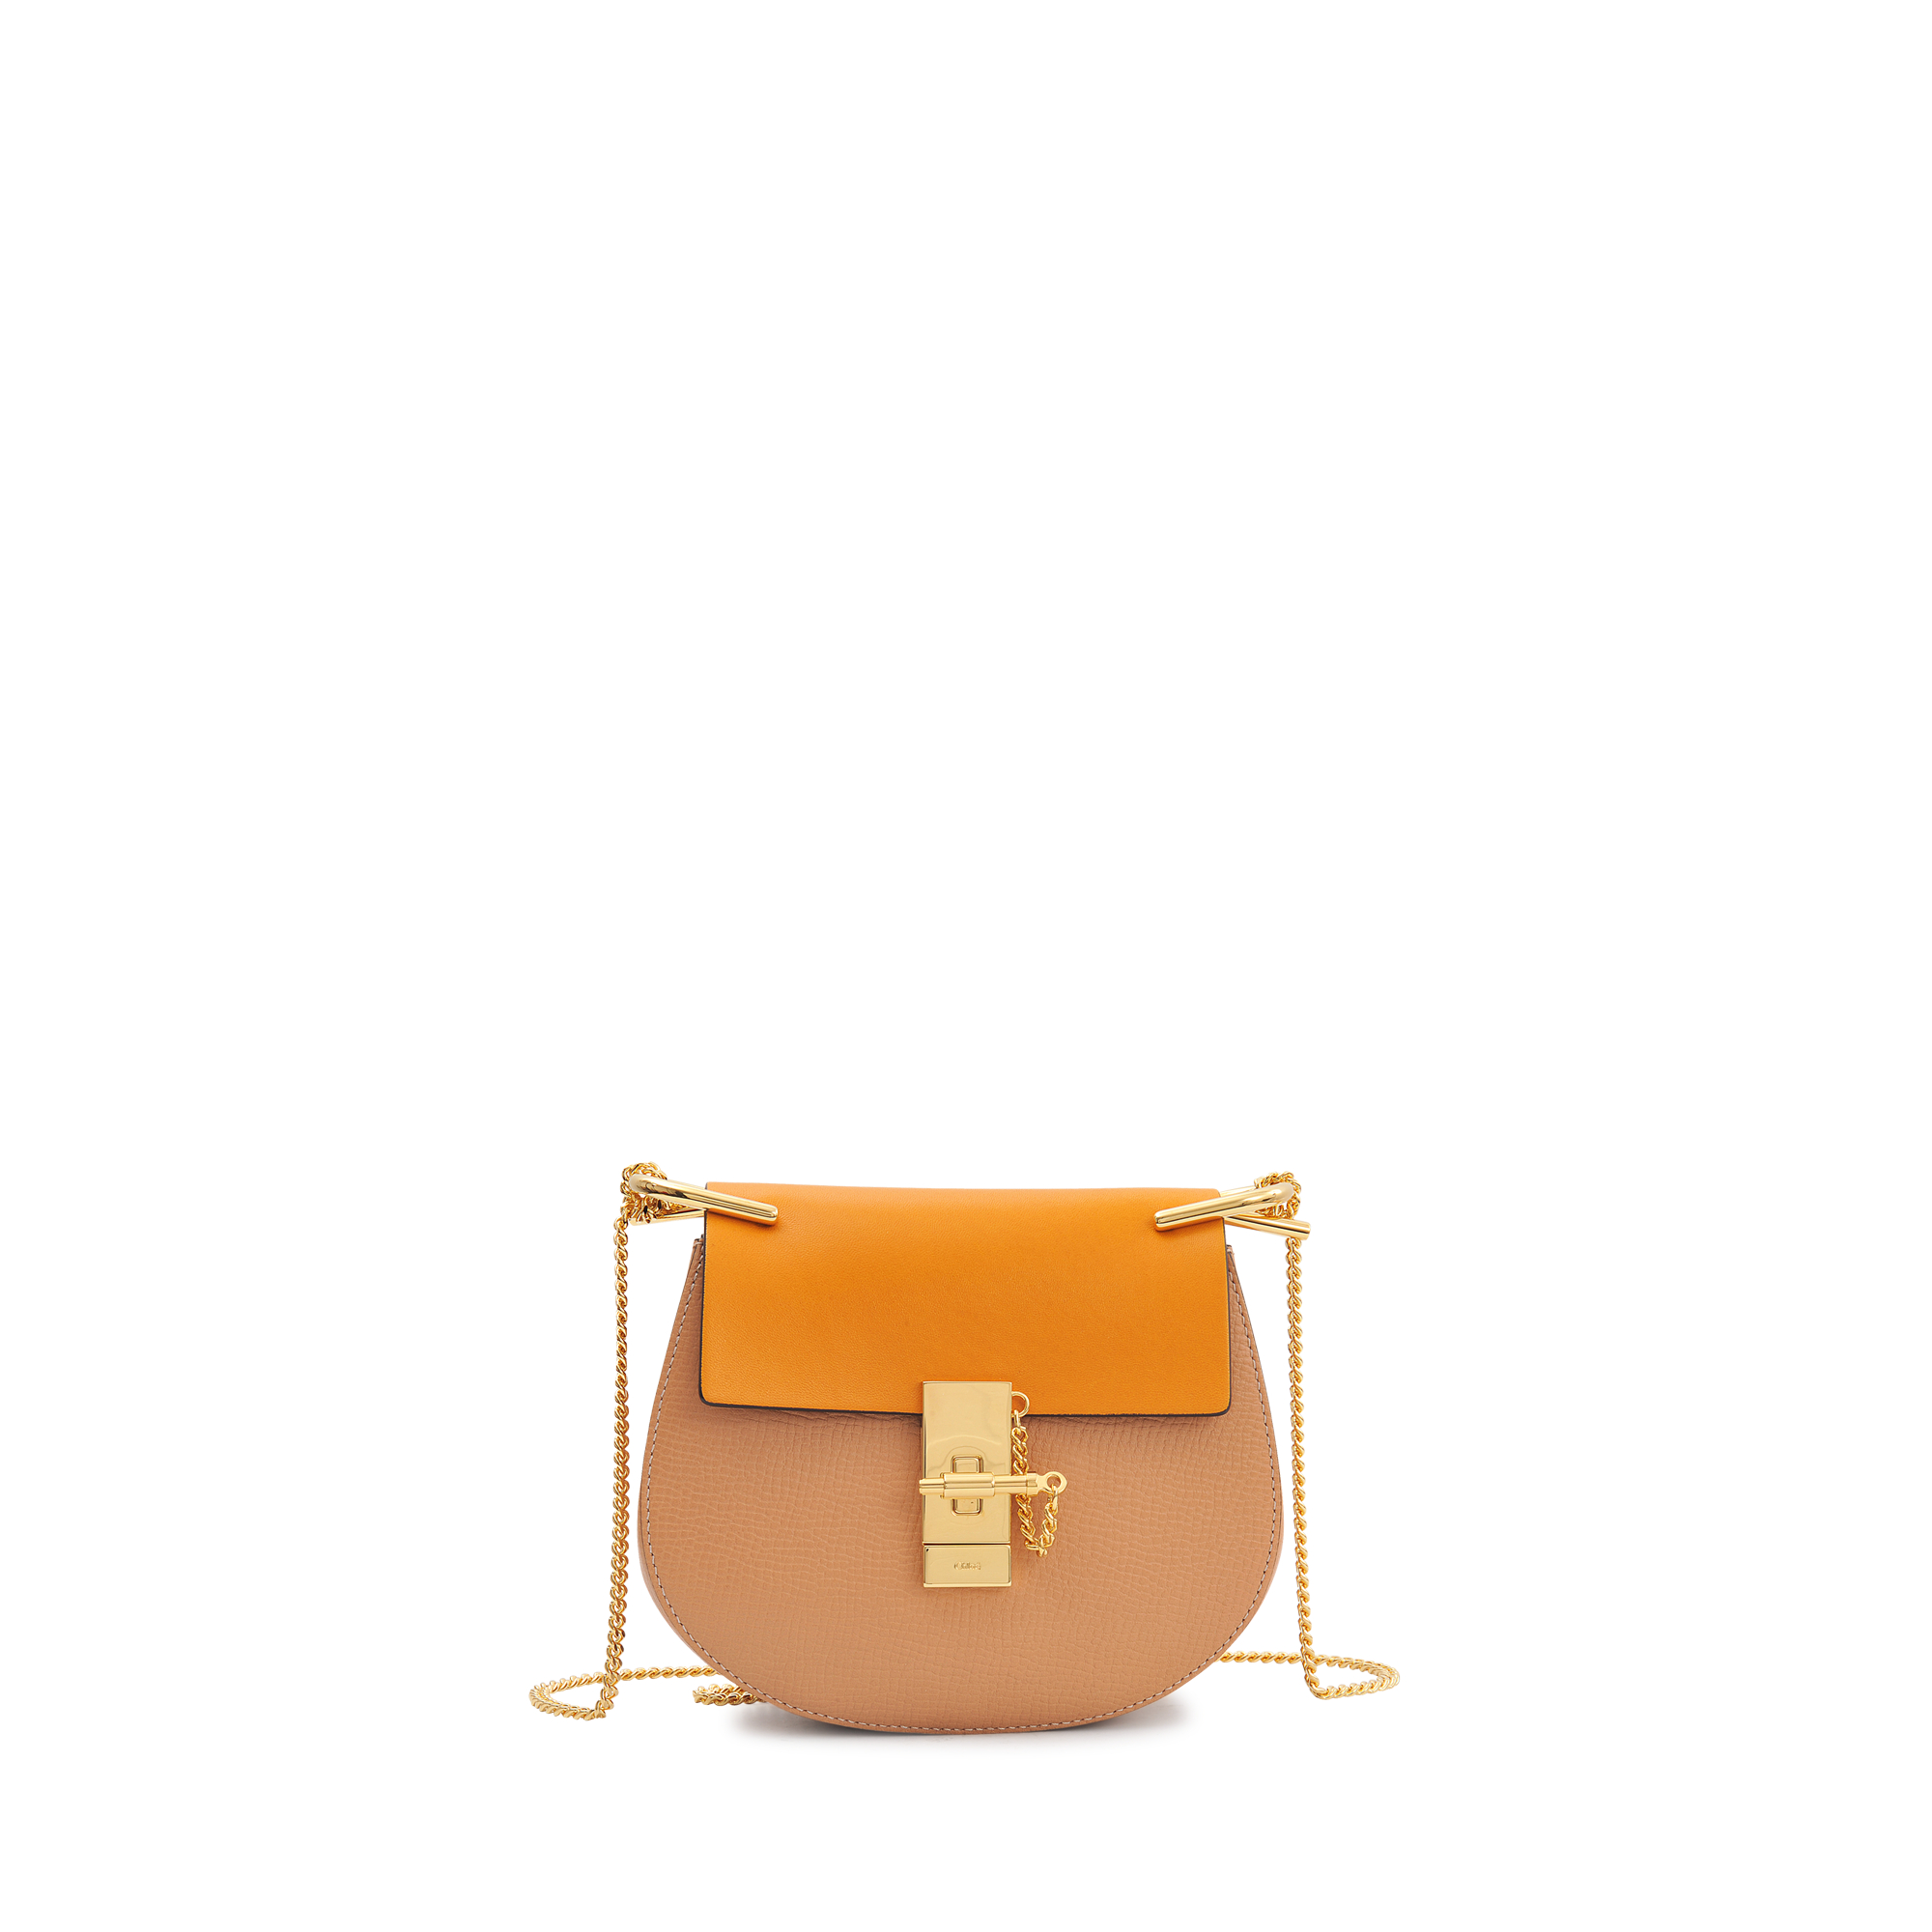 chloe drew chain small bag